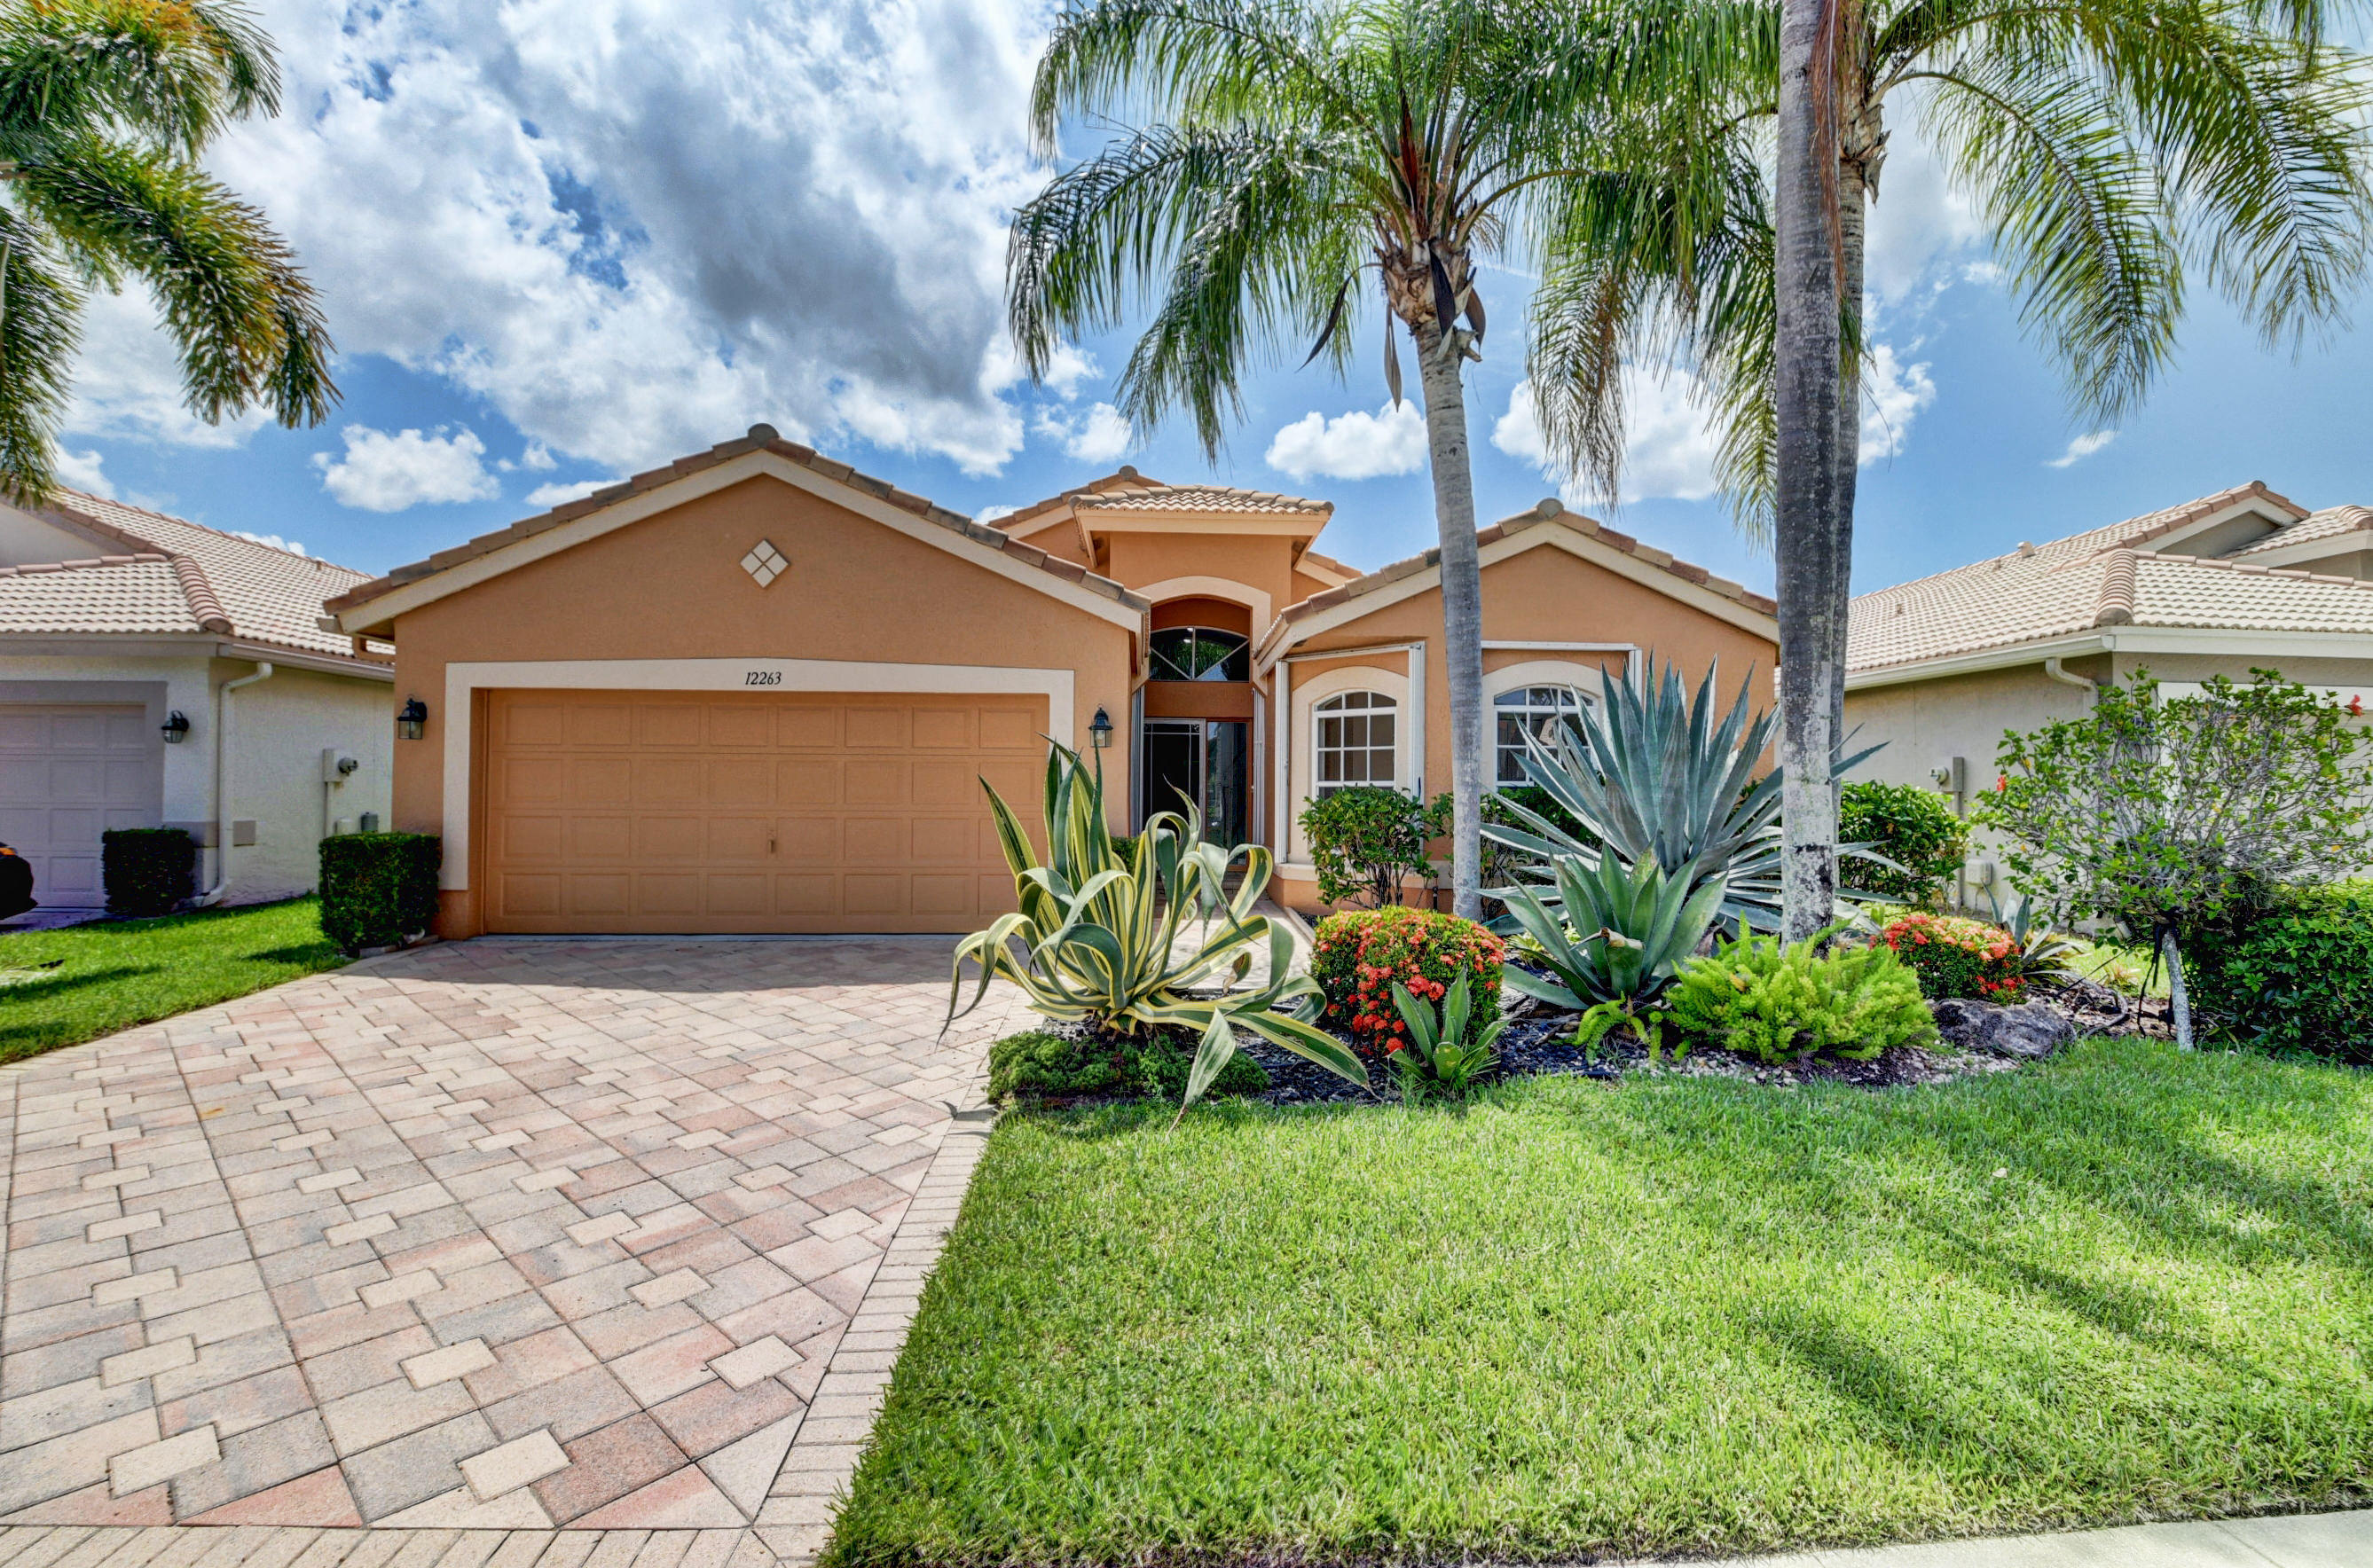 Home for sale in Guard Gated community,Low Hoa,low taxes Clubhouse,exercise rm,sidewalks Golf,Pool,spa/hot much more, Boynton Beach Florida